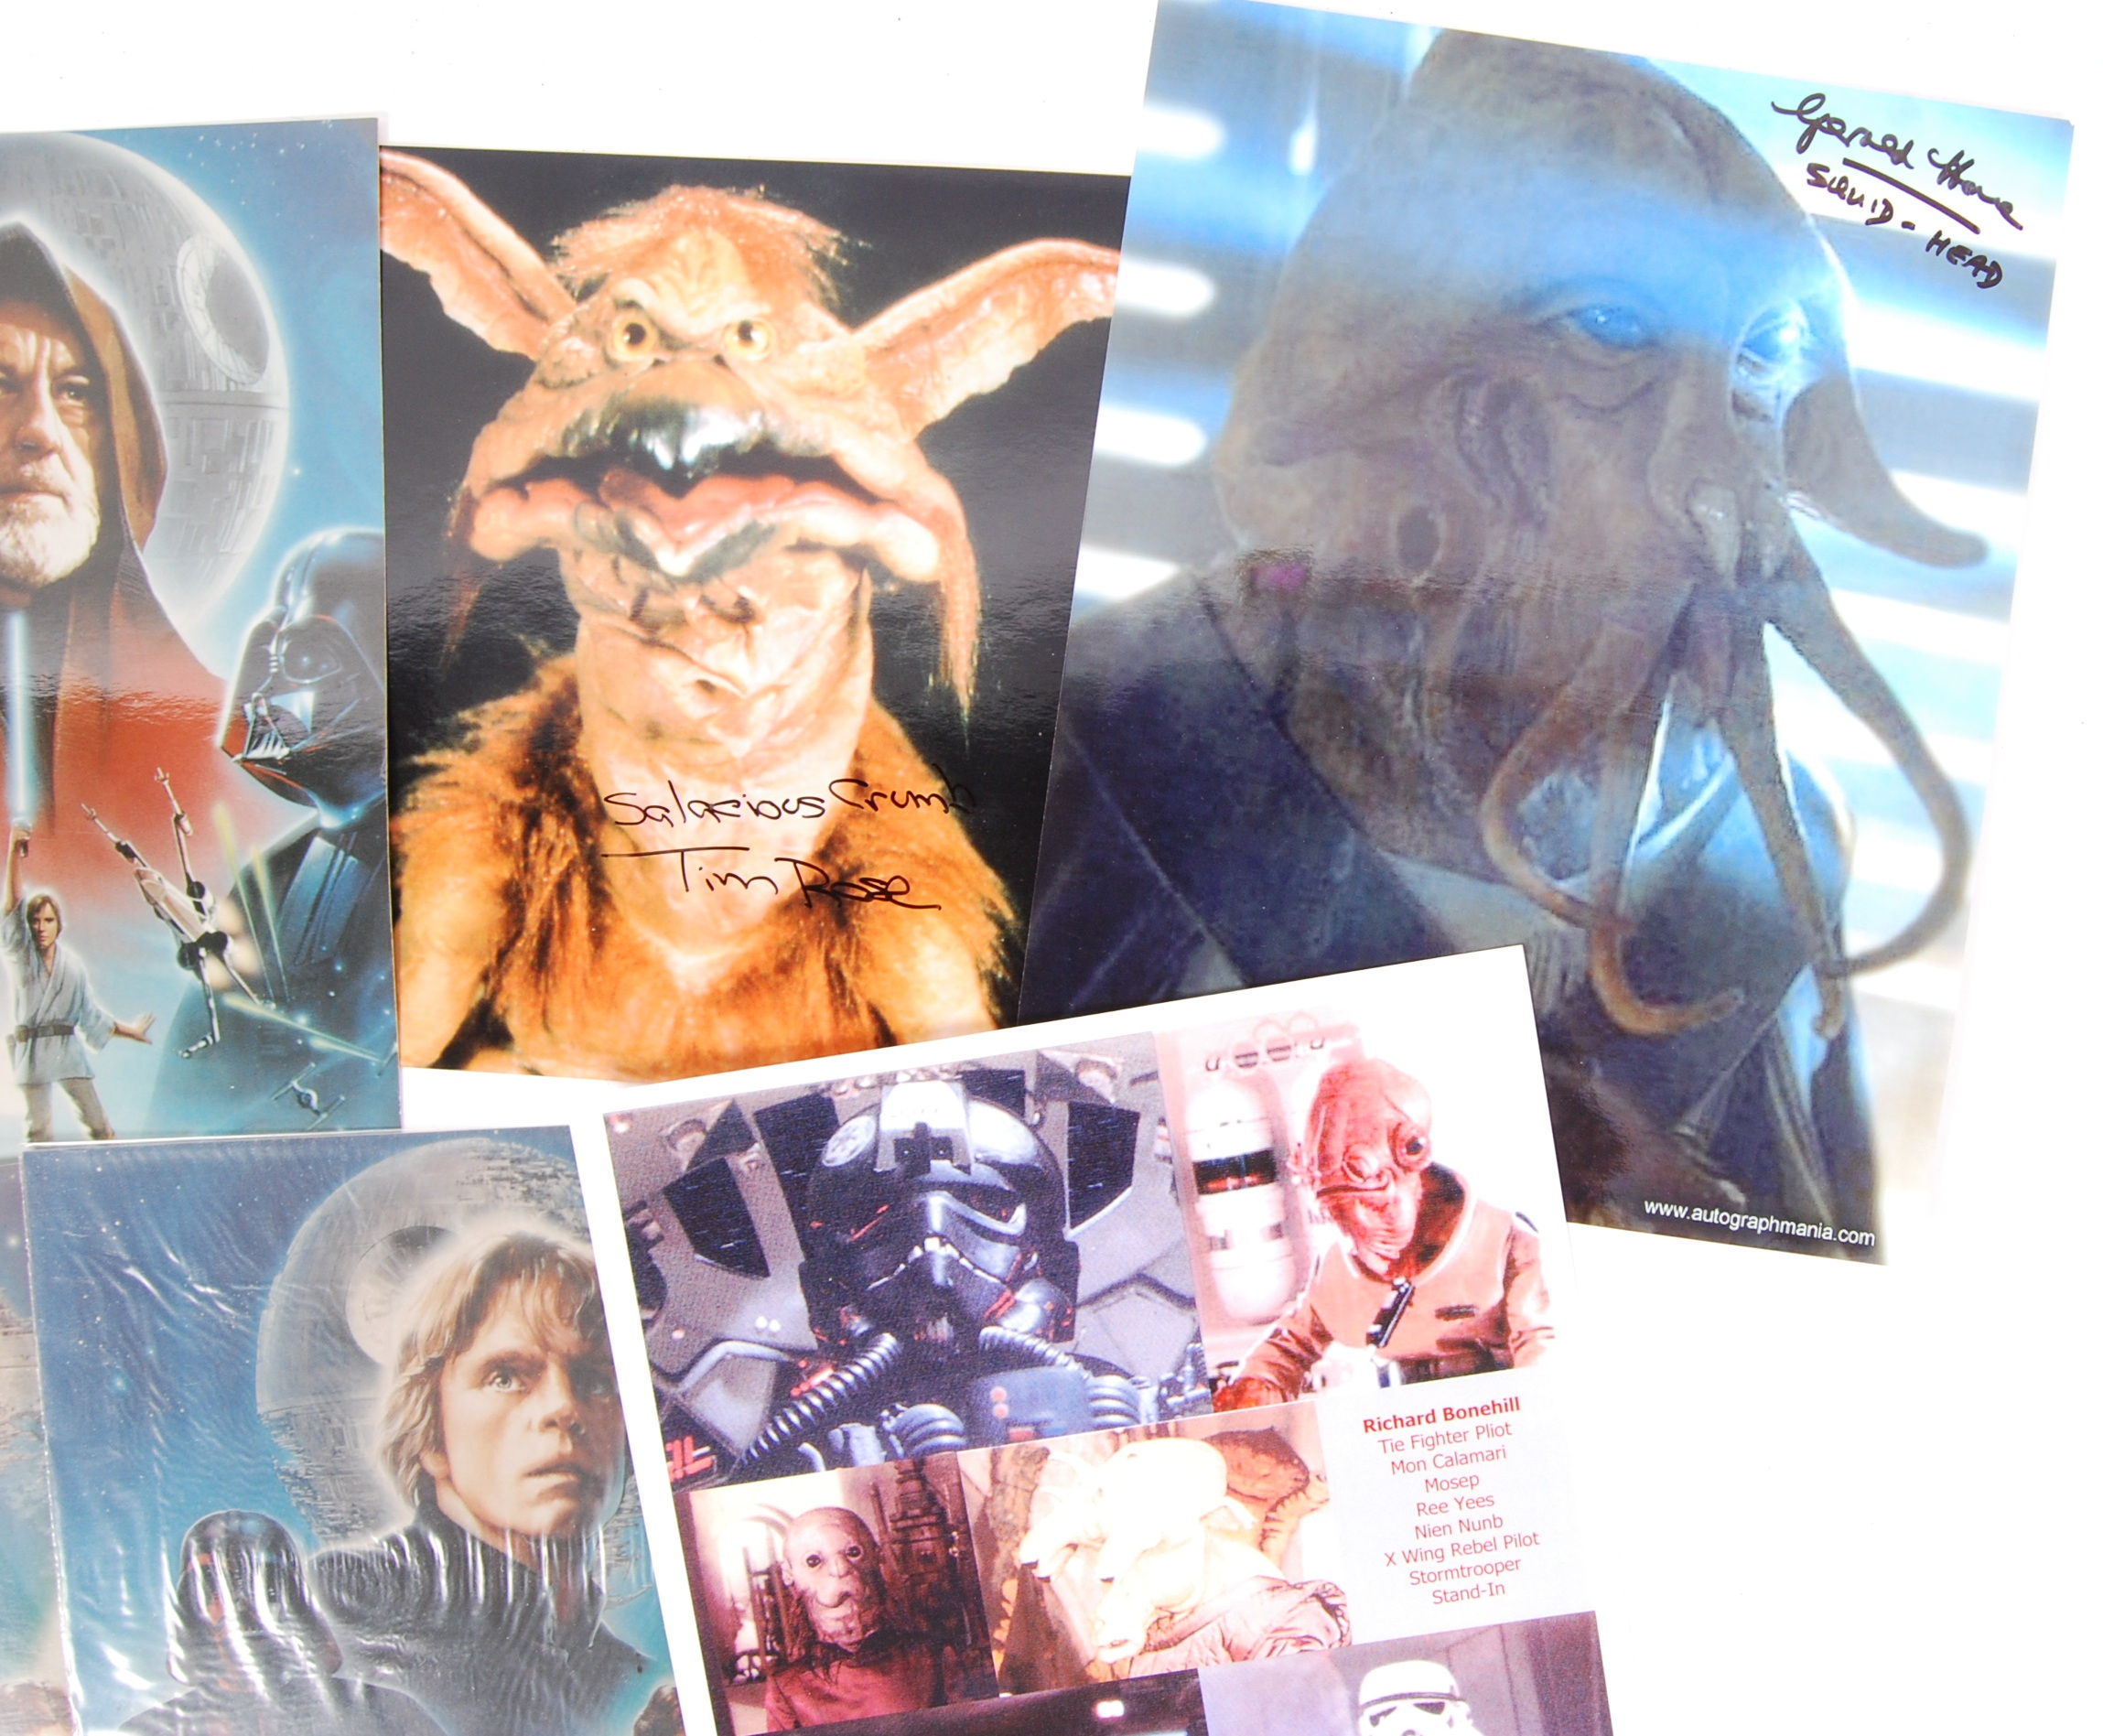 STAR WARS - SELECTION OF AUTOGRAPHED PHOTOGRAPHS - Image 3 of 4